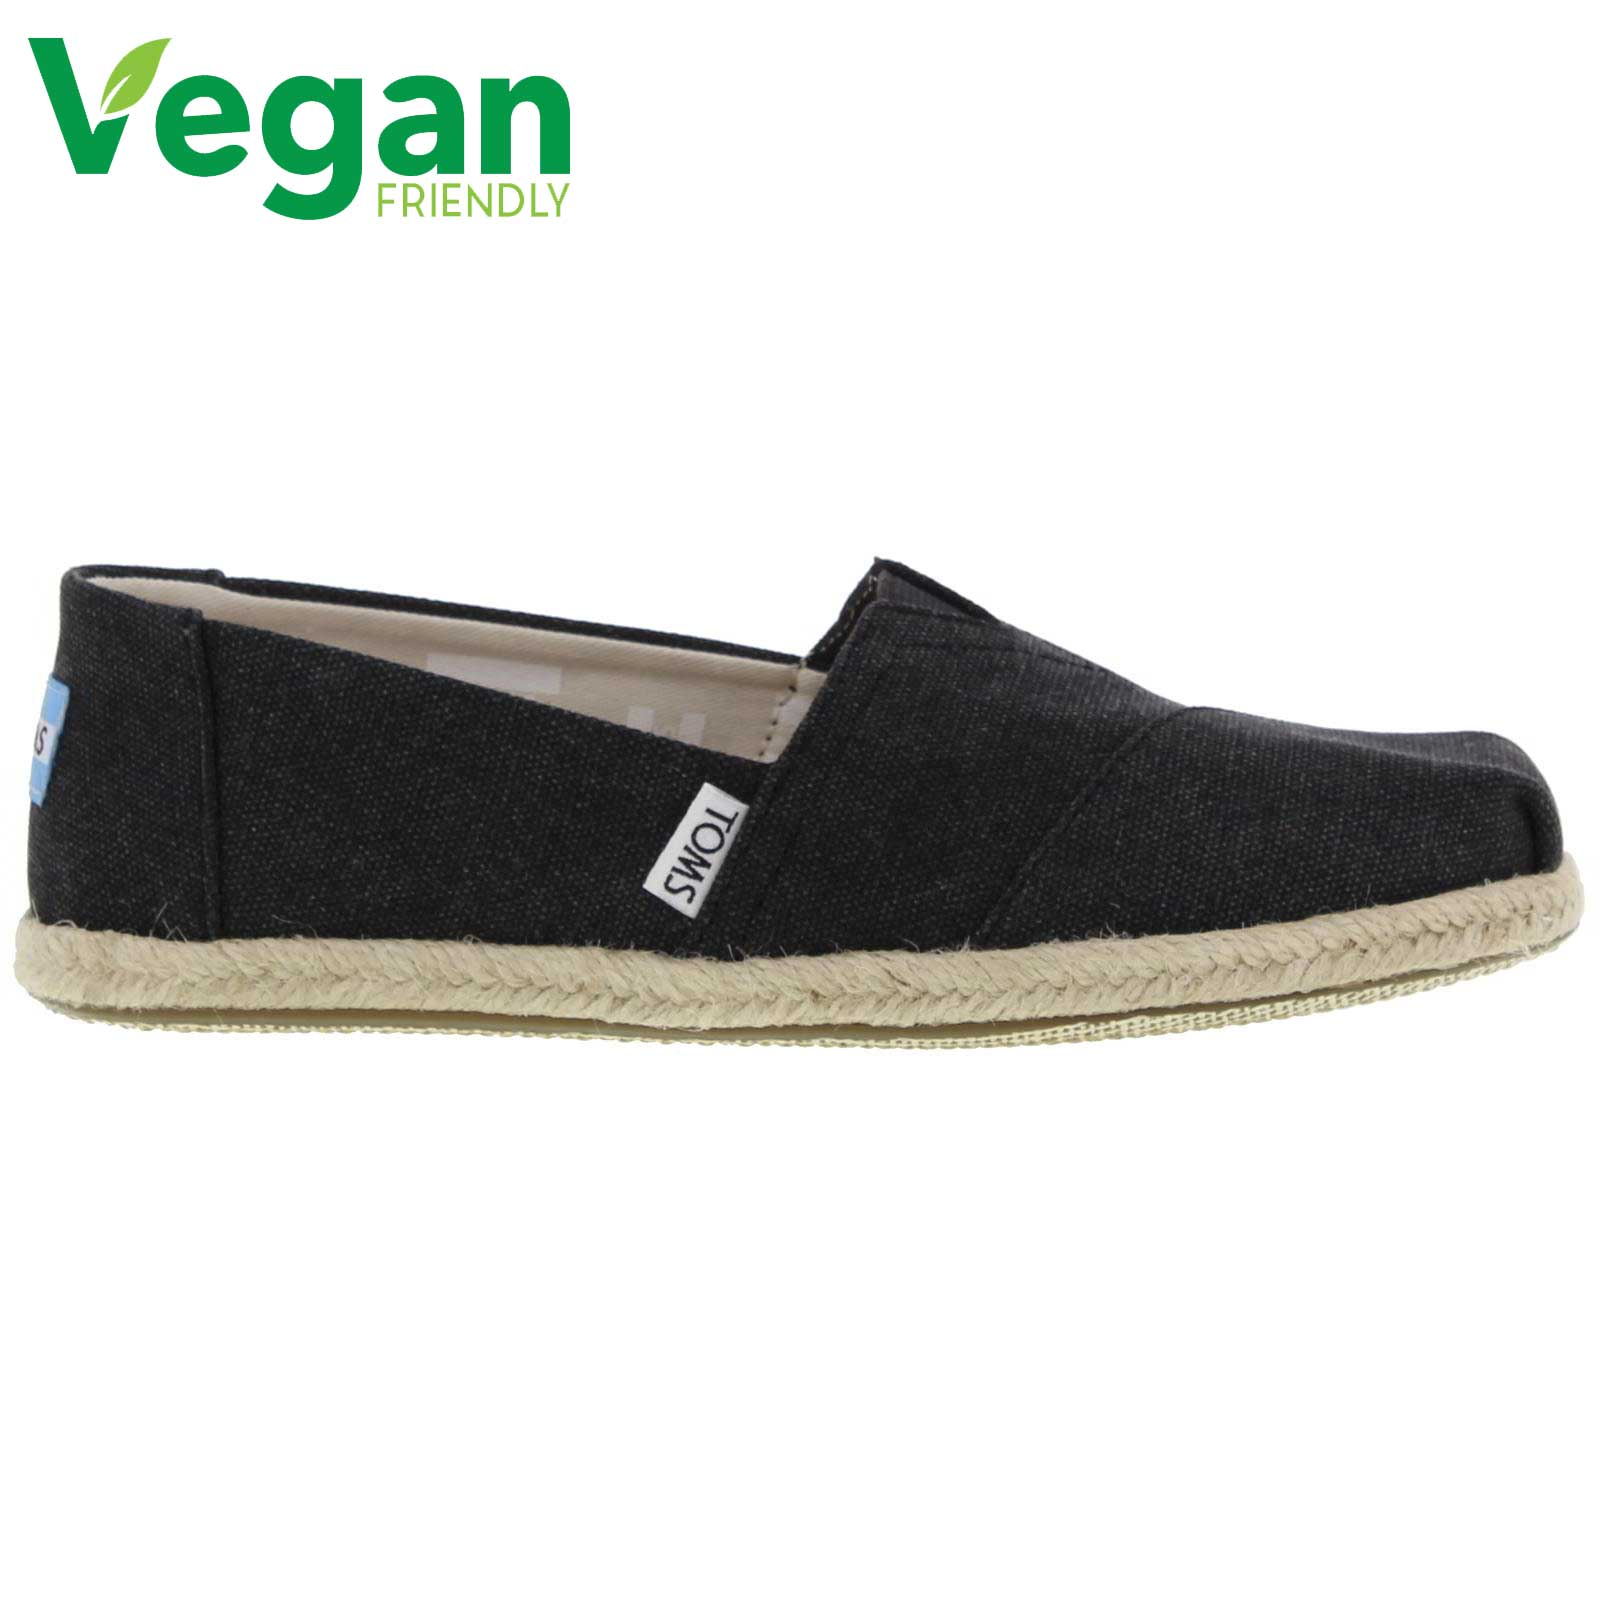 Toms Womens Classic Espadrille Vegan Shoes - Black Washed